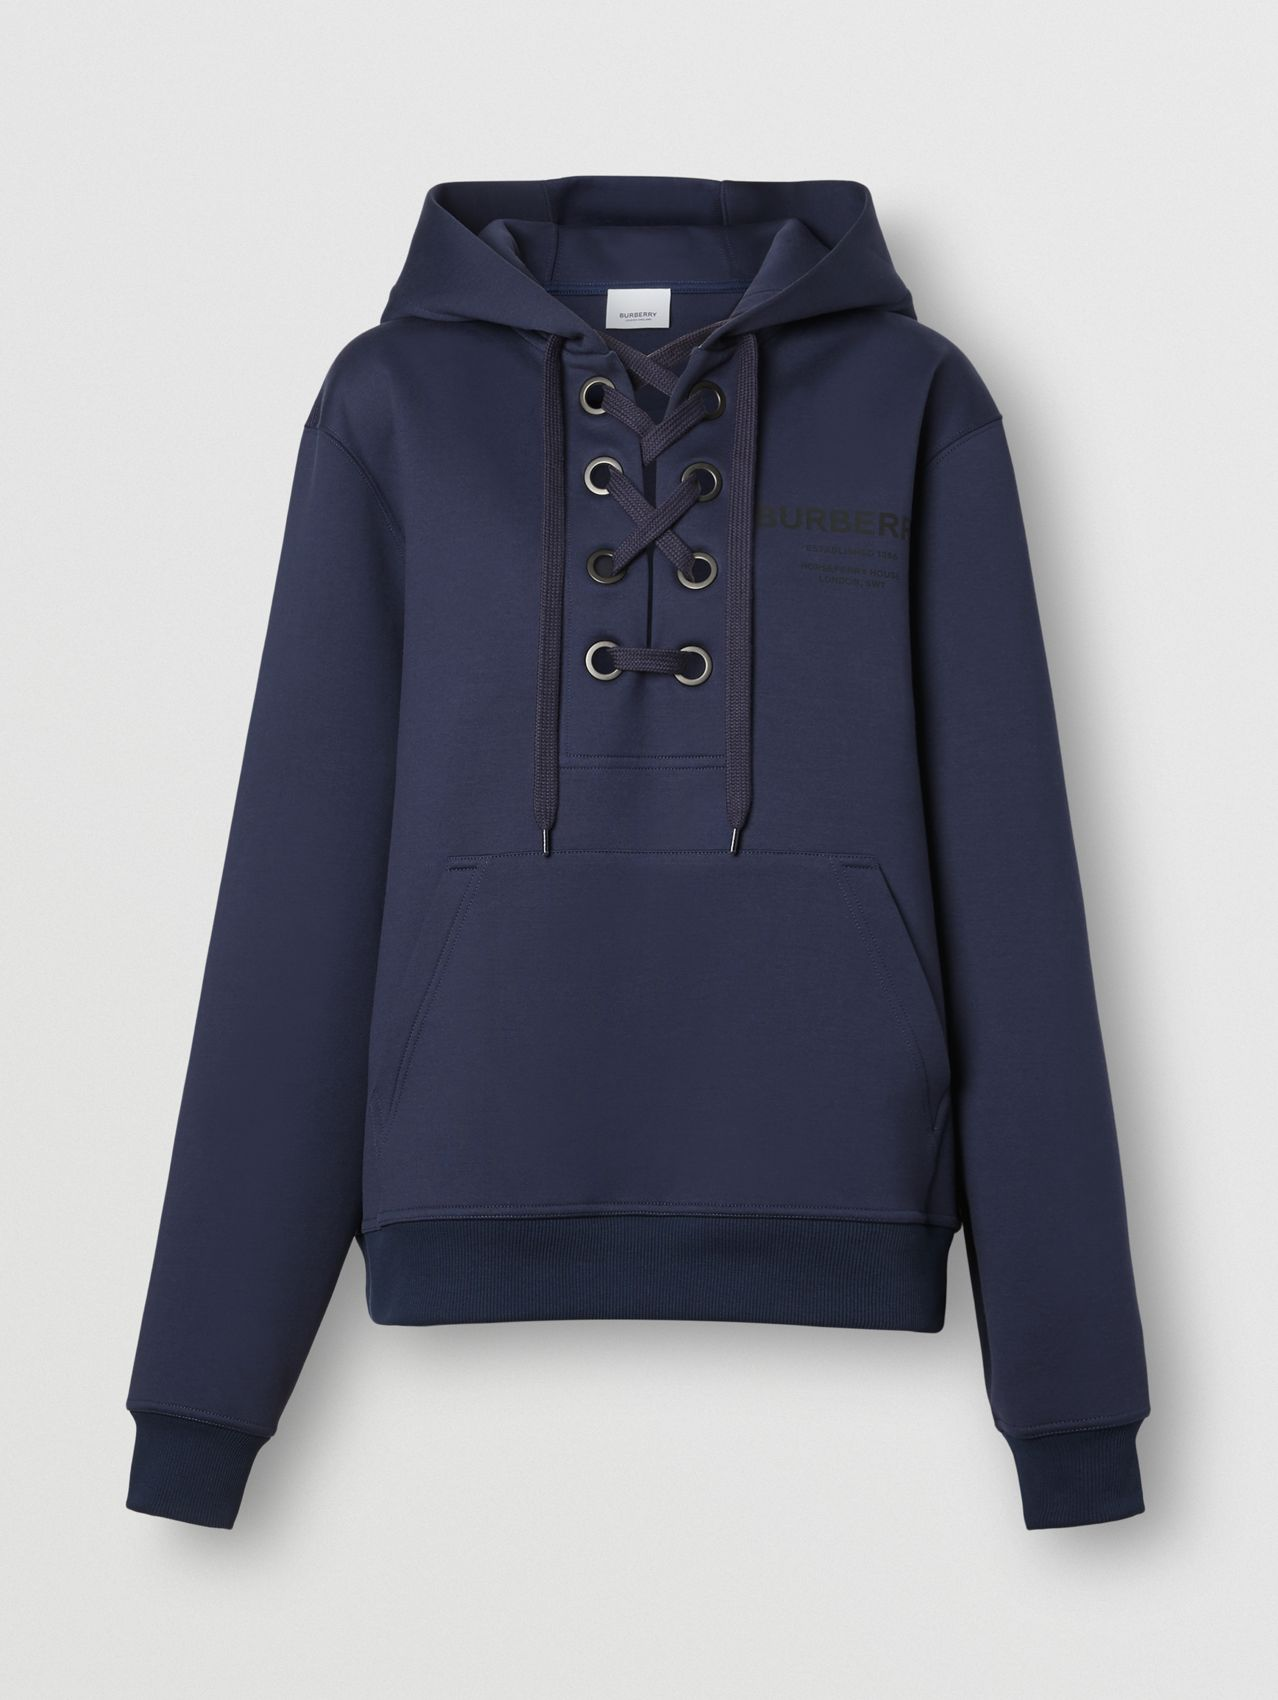 Lace-up Horseferry Print Cotton Oversized Hoodie in Bright Navy